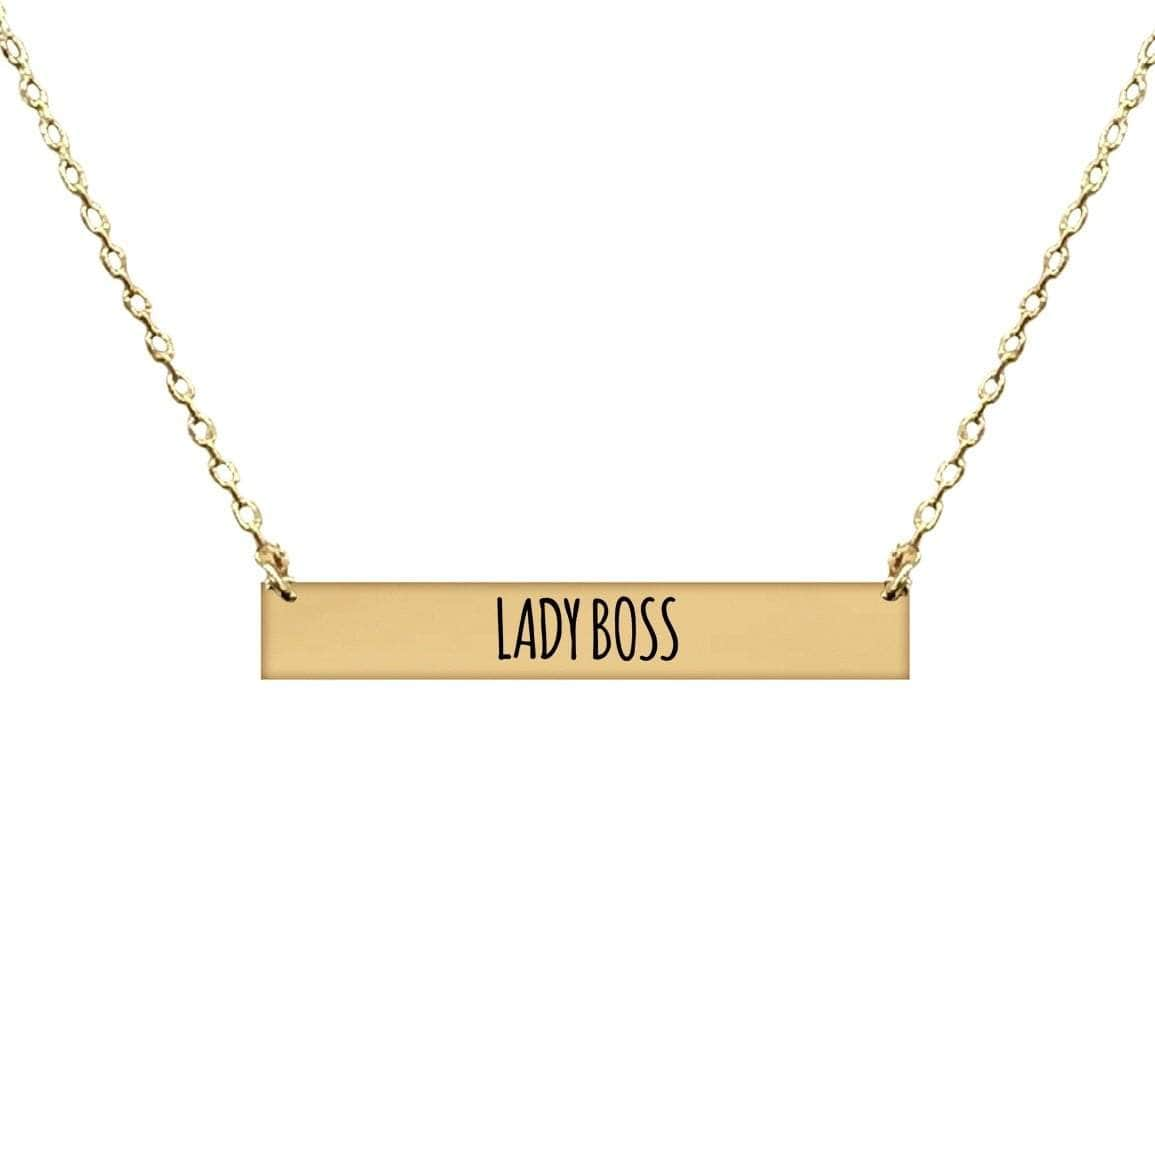 LADY BOSS BAR NECKLACE